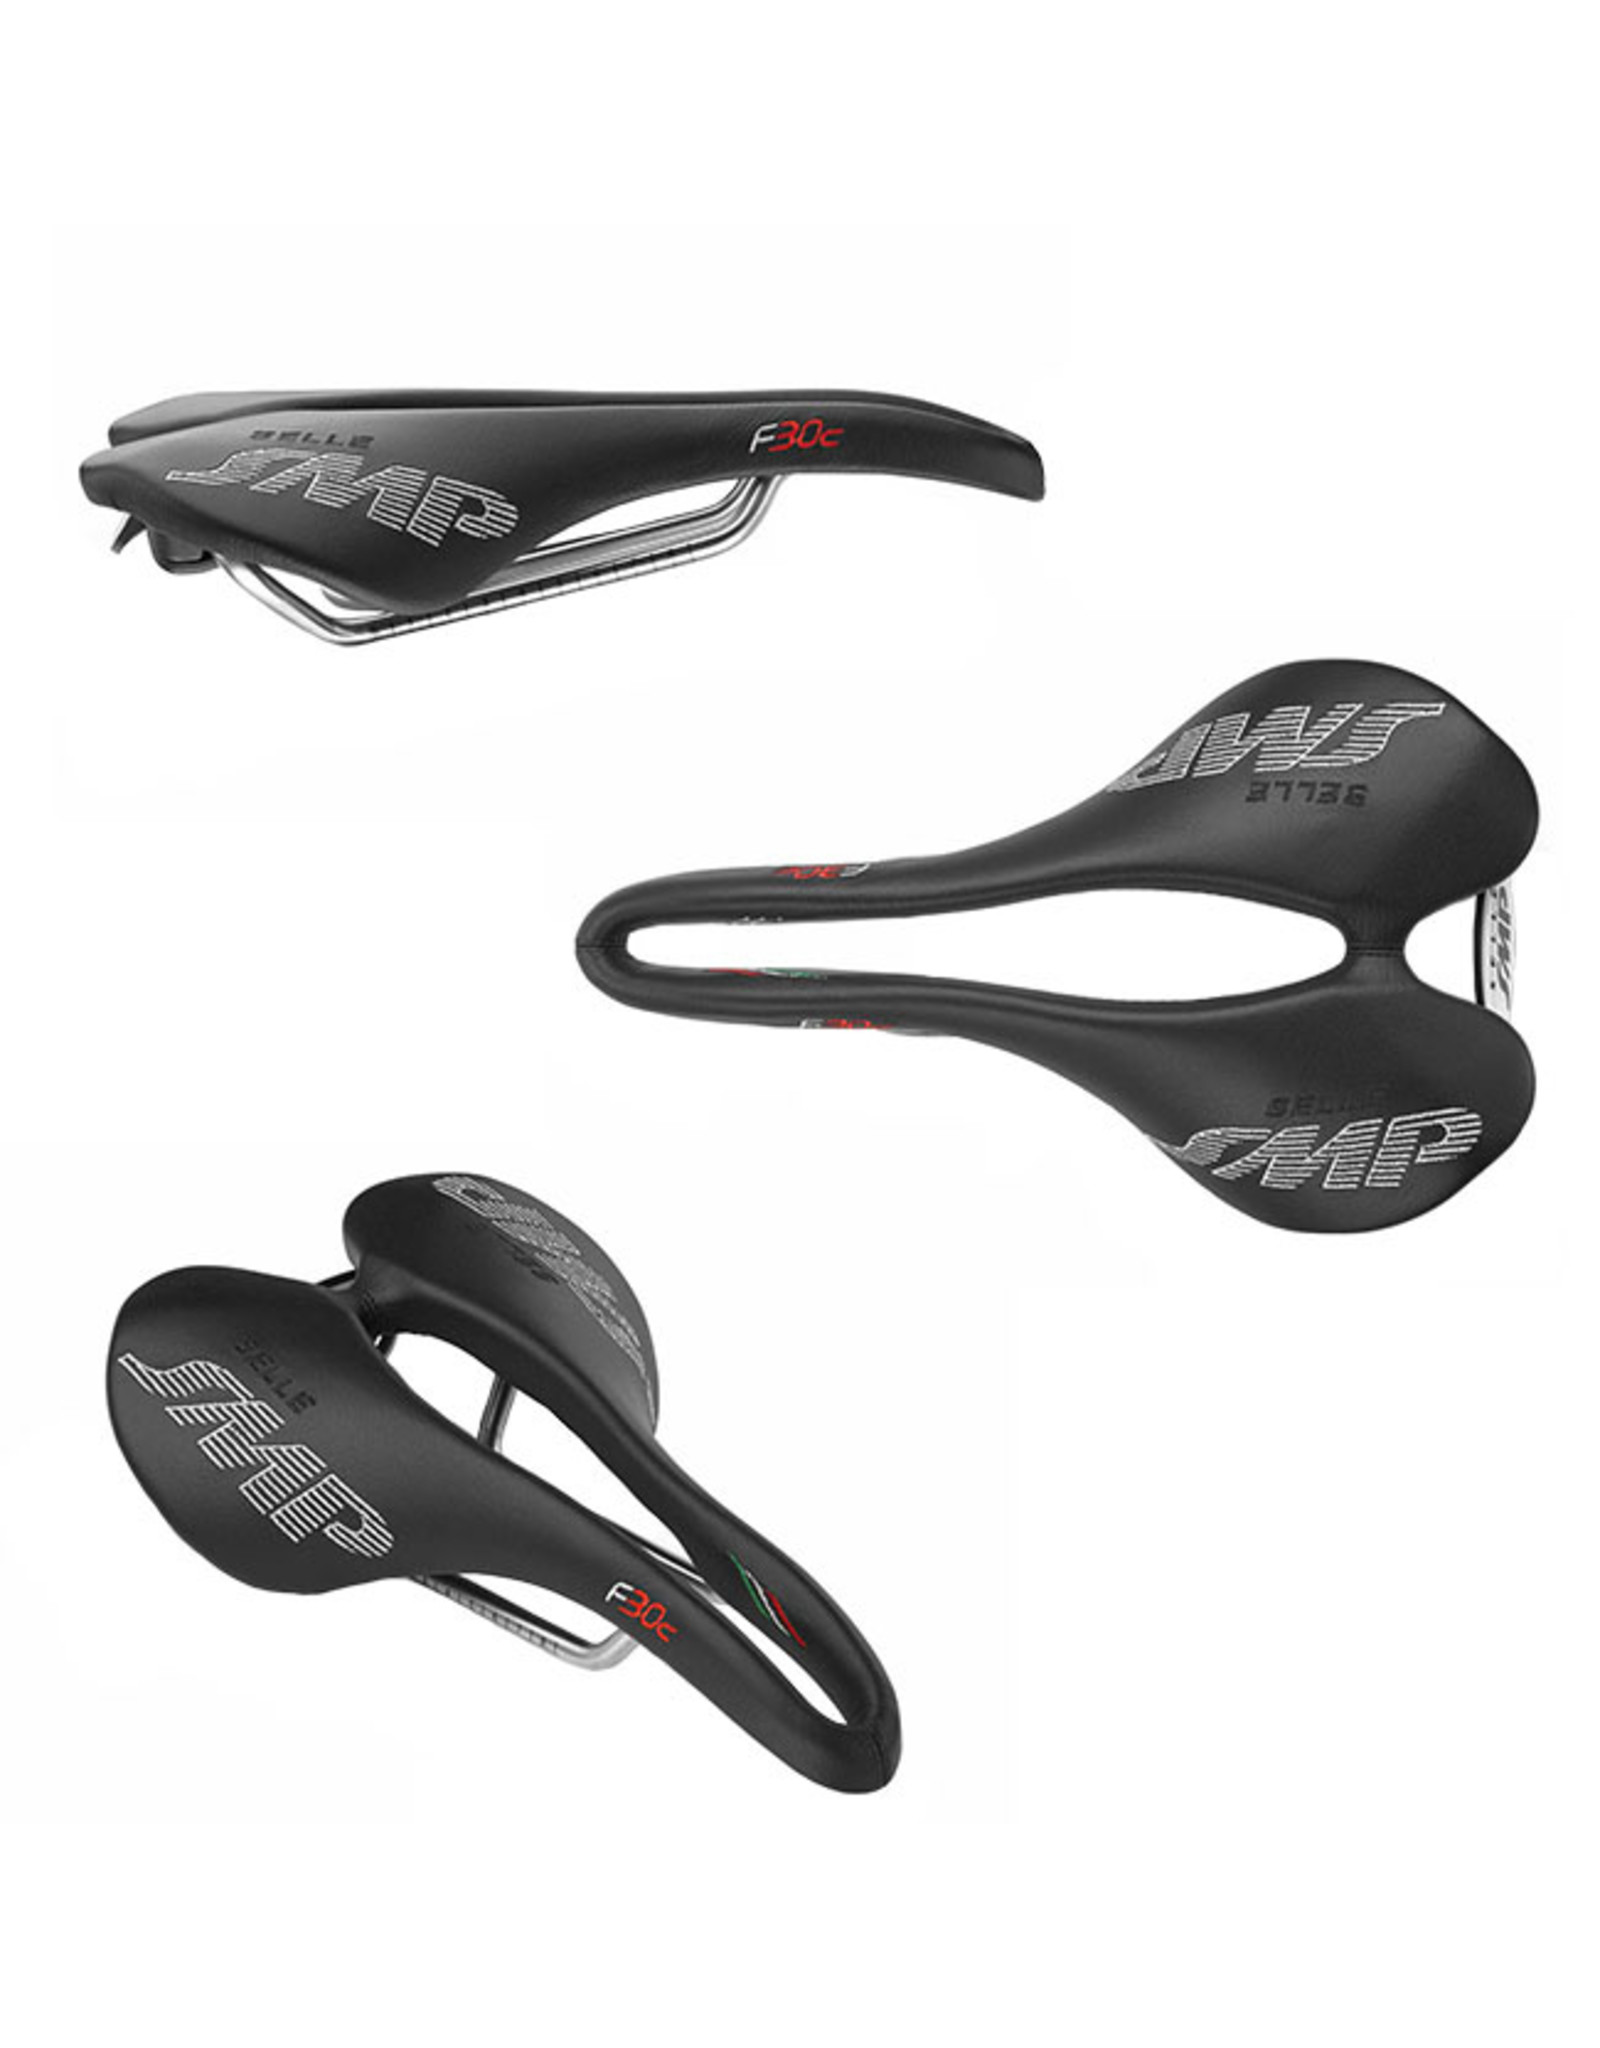 Selle SMP Selle SMP Professional Saddle